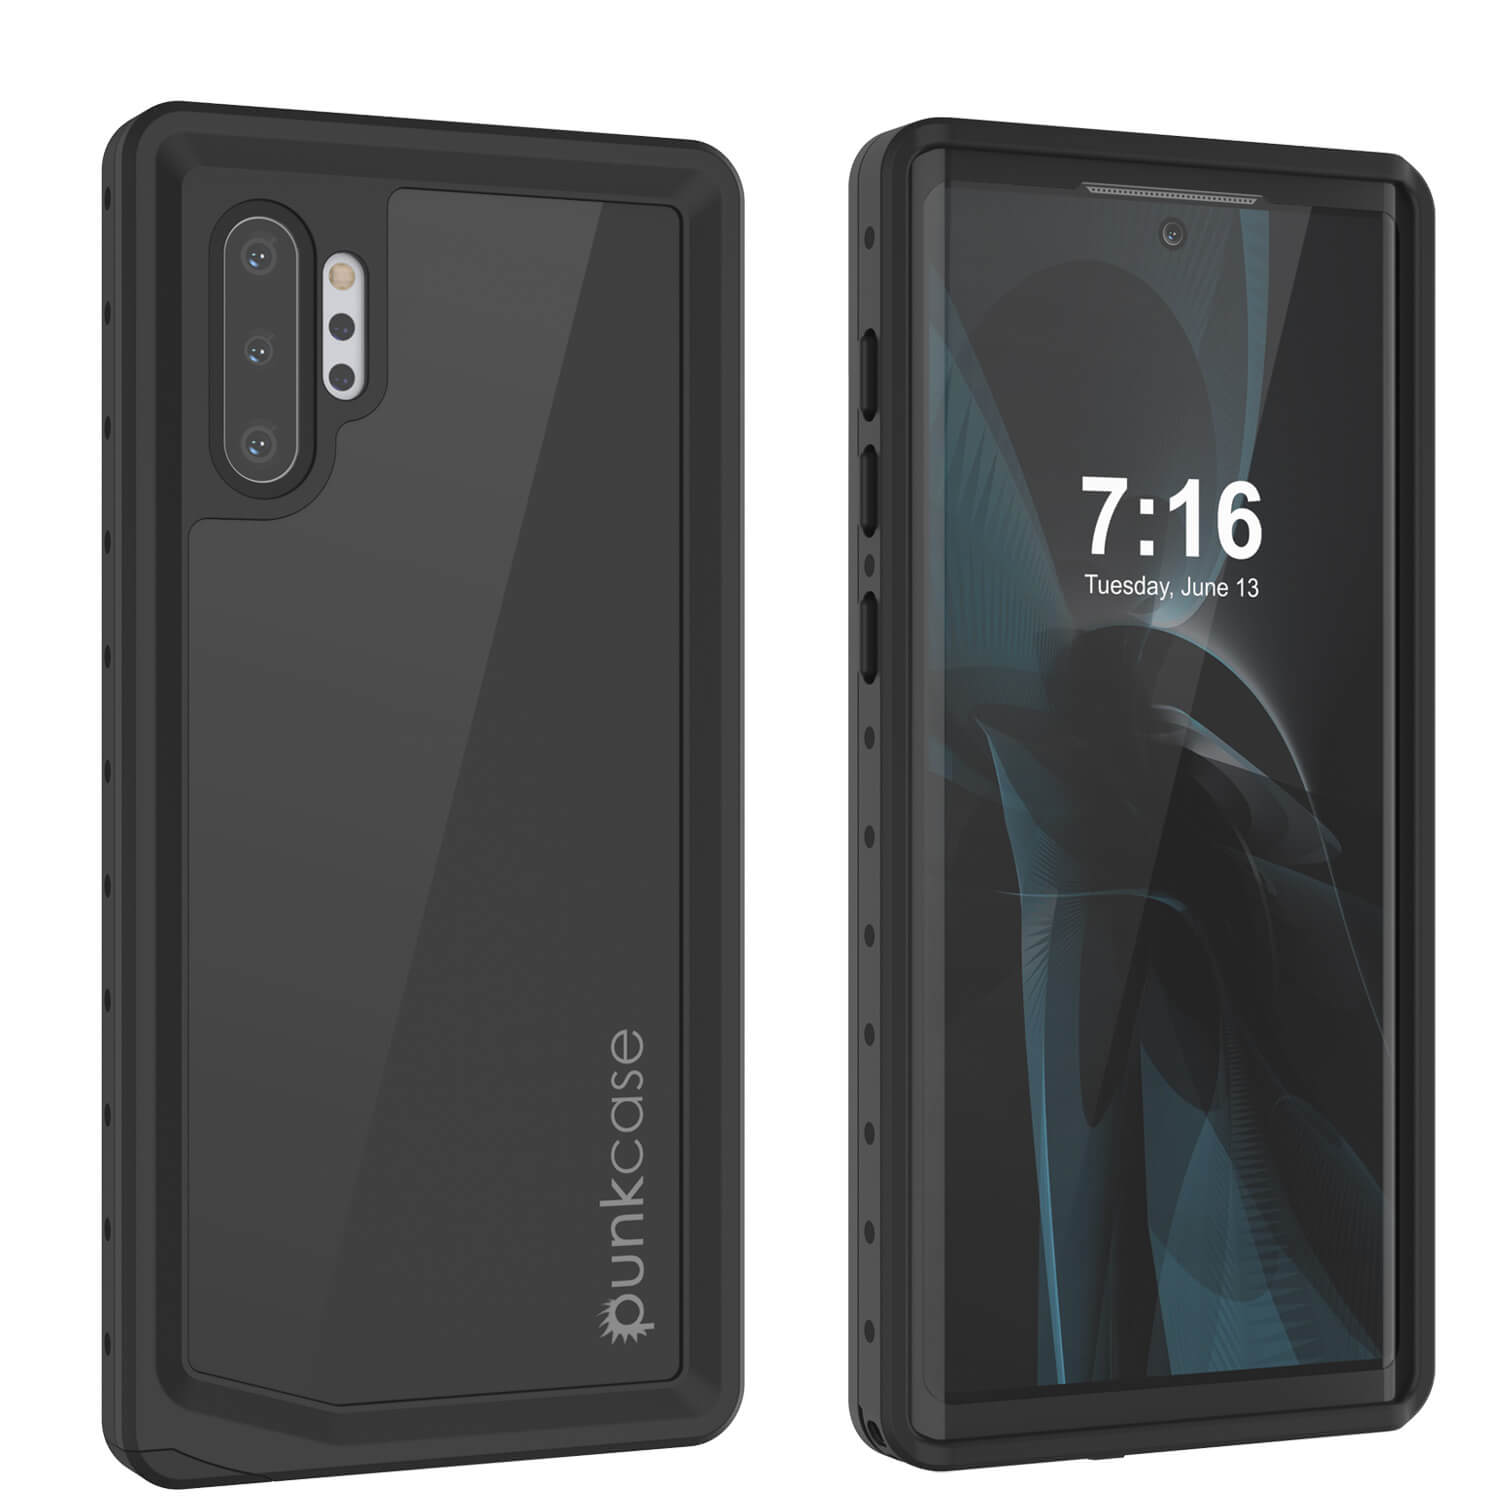 ***PRE-ORDER*** Galaxy Note 10+ Plus Waterproof Case, Punkcase Studstar Black Thin Armor Cover